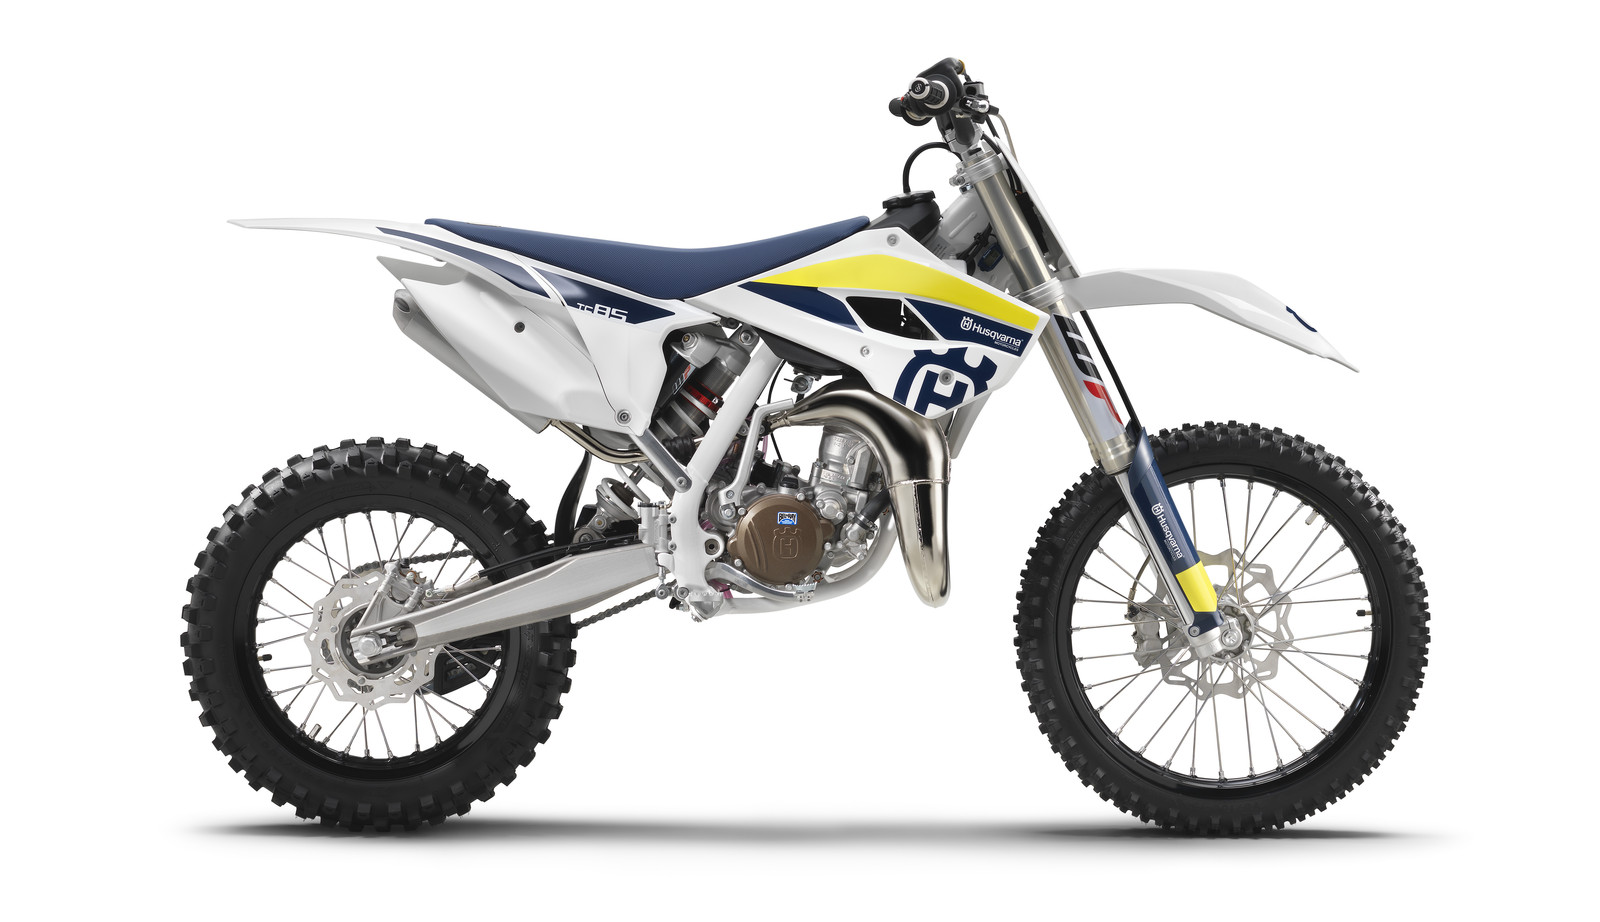 2017 husqvarna tc 85 first look 2017 husqvarna motocross models motocross pictures vital mx. Black Bedroom Furniture Sets. Home Design Ideas